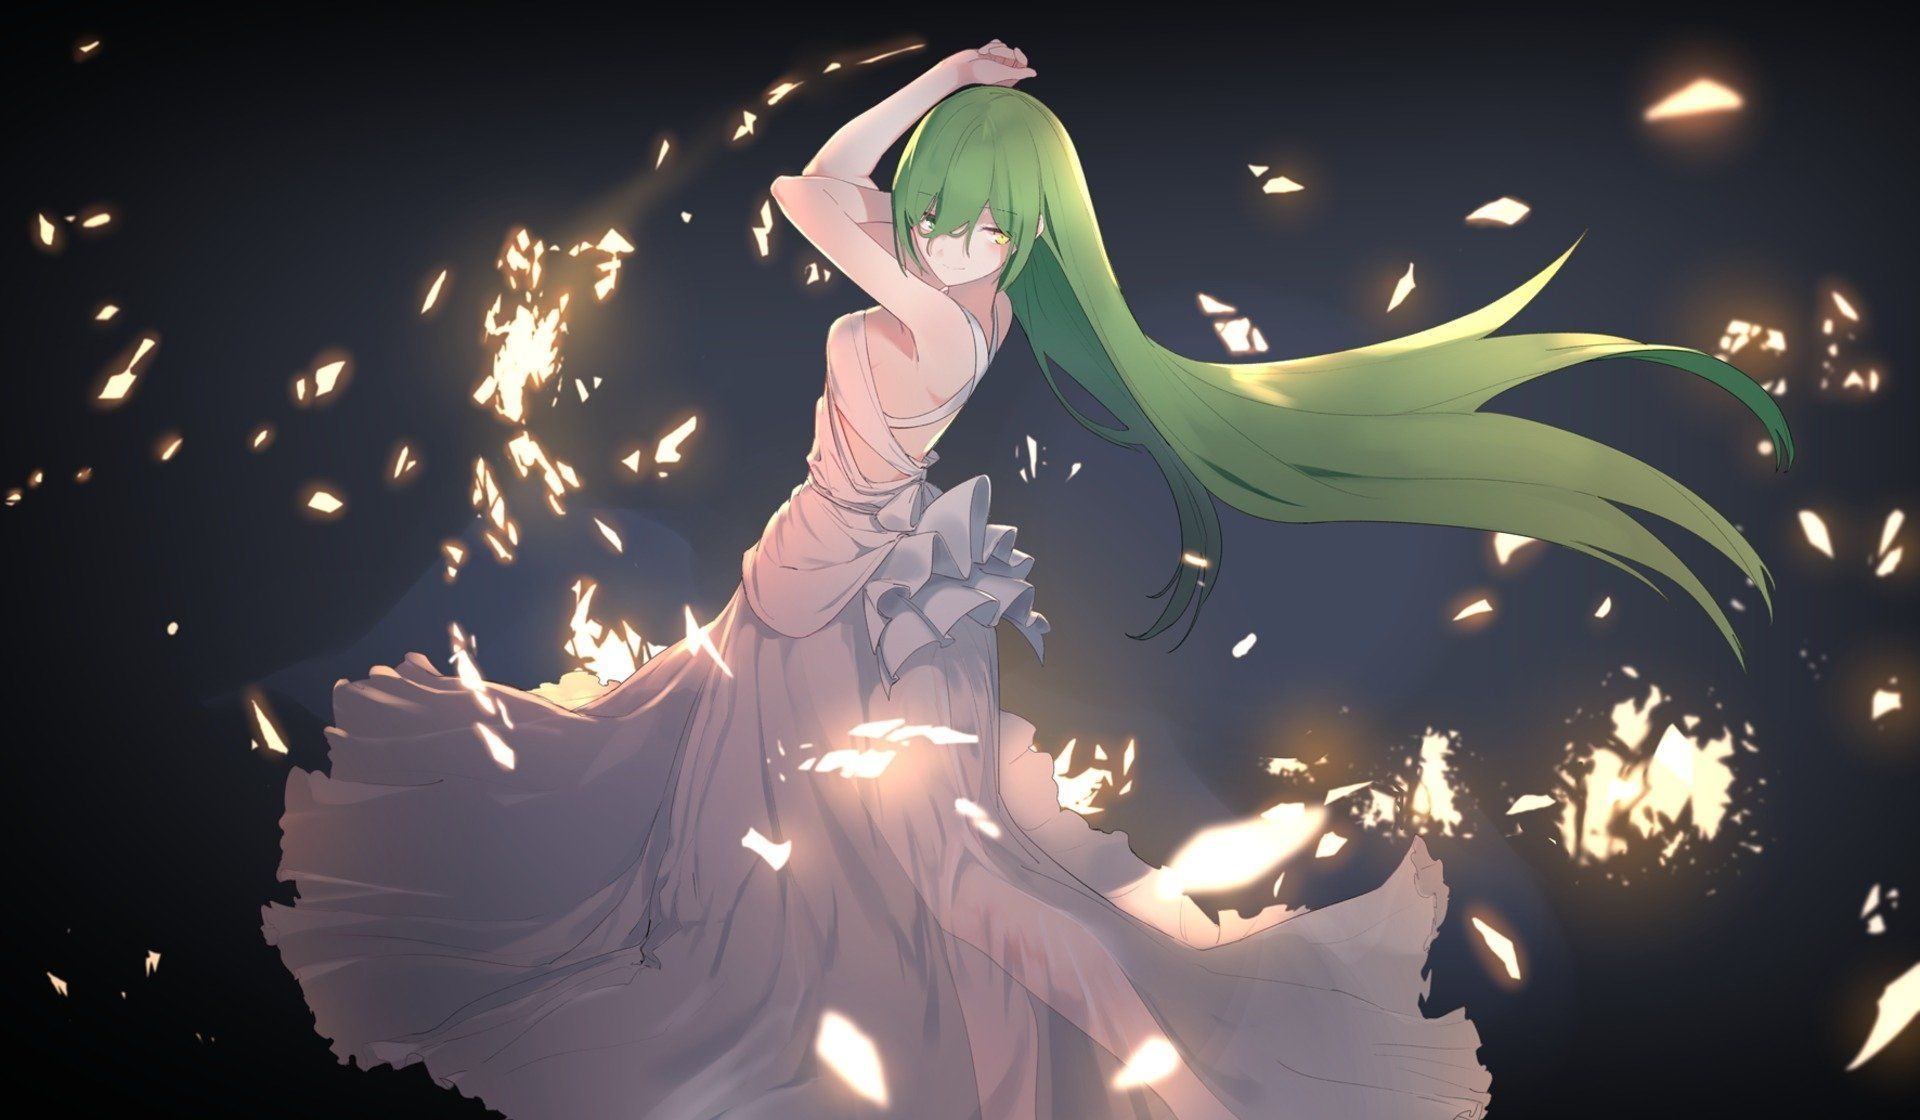 Dancing Couple Anime Wallpapers - Wallpaper Cave